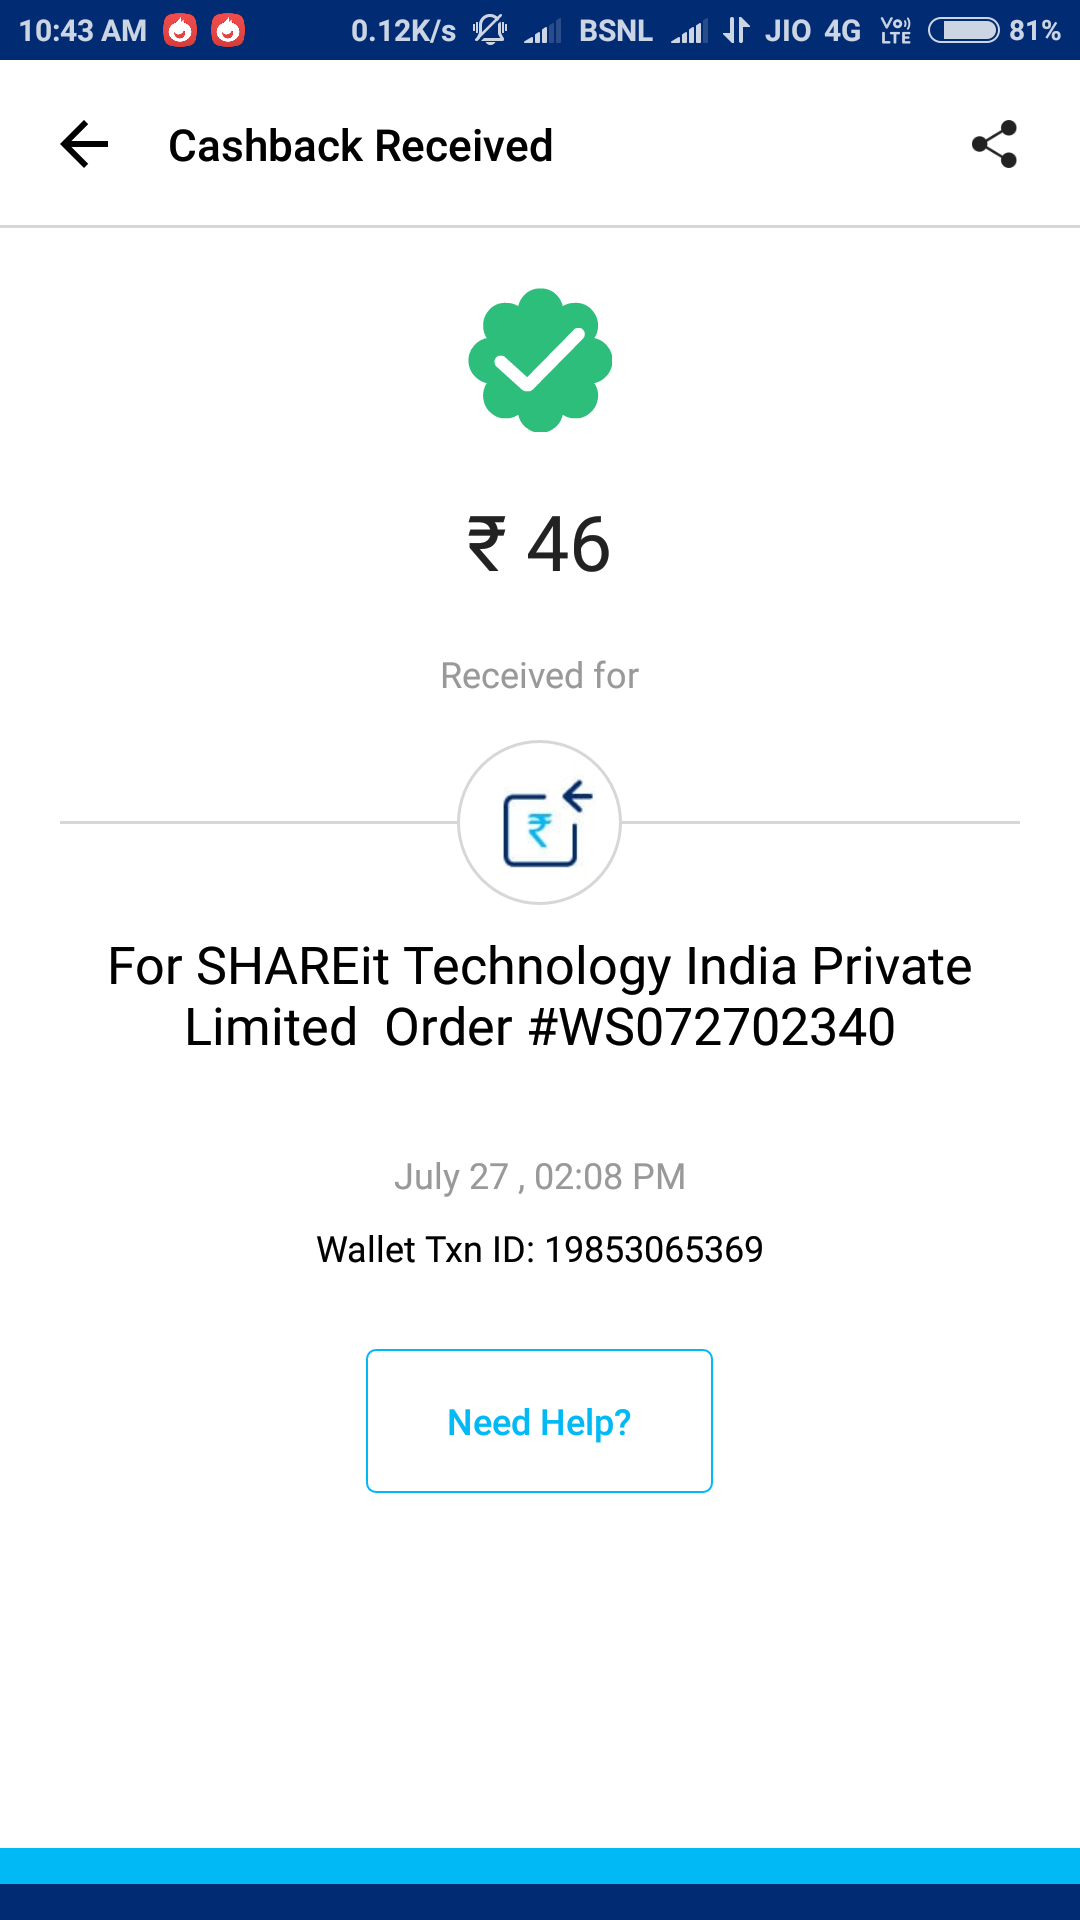 Shareit apk contest-Get Free Paytm Cash From (Daily Lakhpot